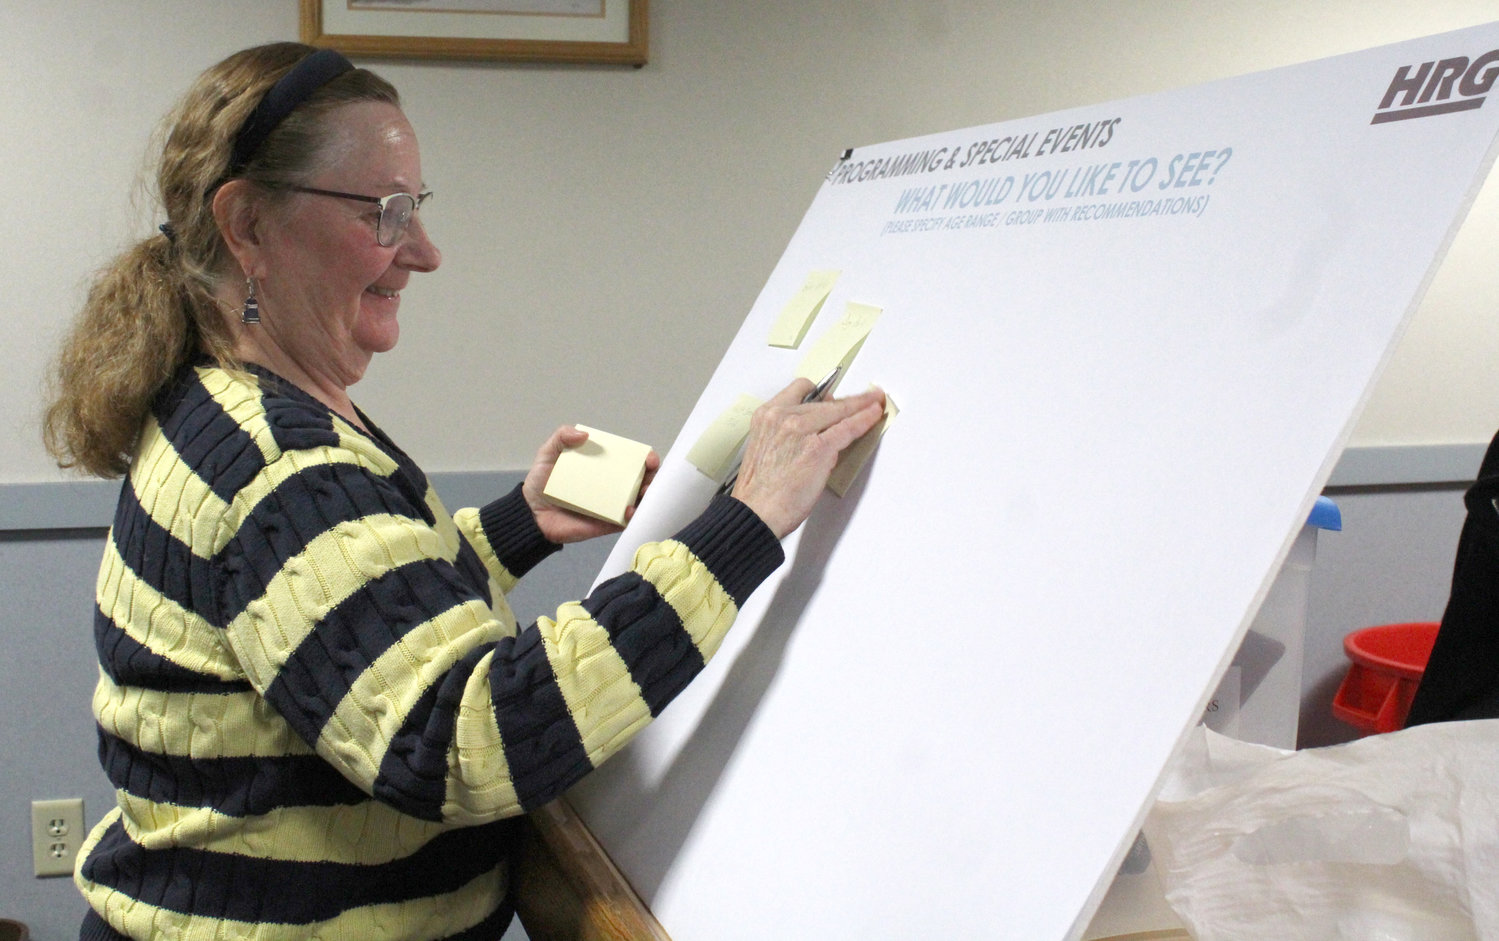 Barb Florence writes down suggestions for Lower Swatara parks programs and events during a meeting Jan. 30.